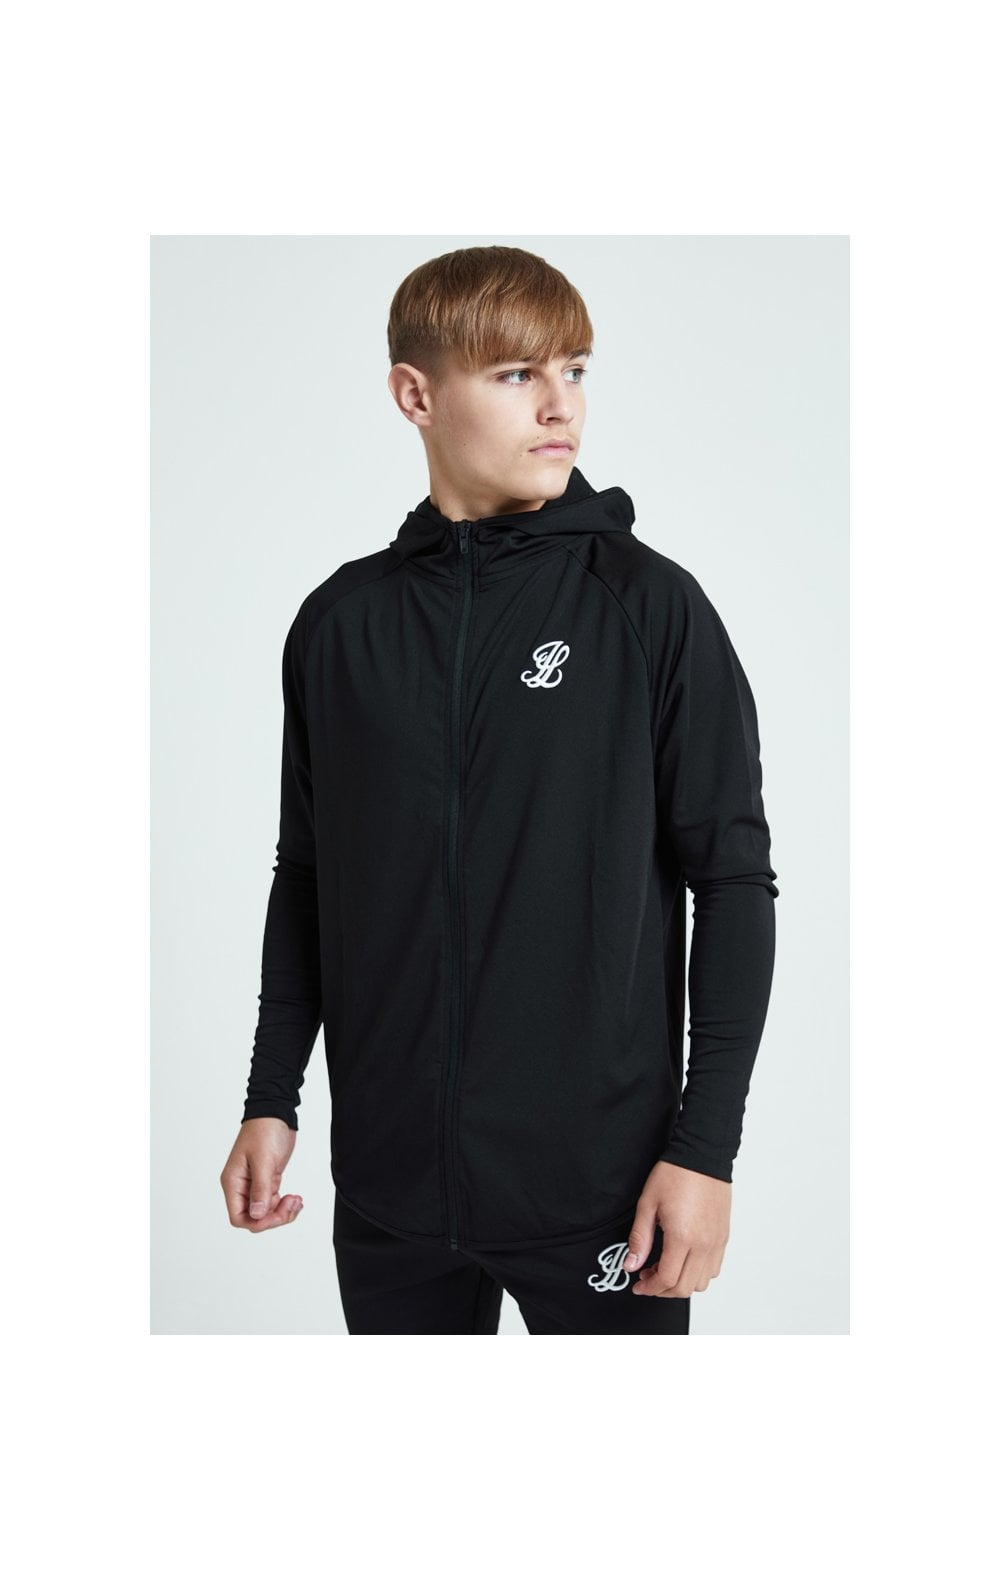 Load image into Gallery viewer, Illusive London Core Athlete Hoodie - Black (2)